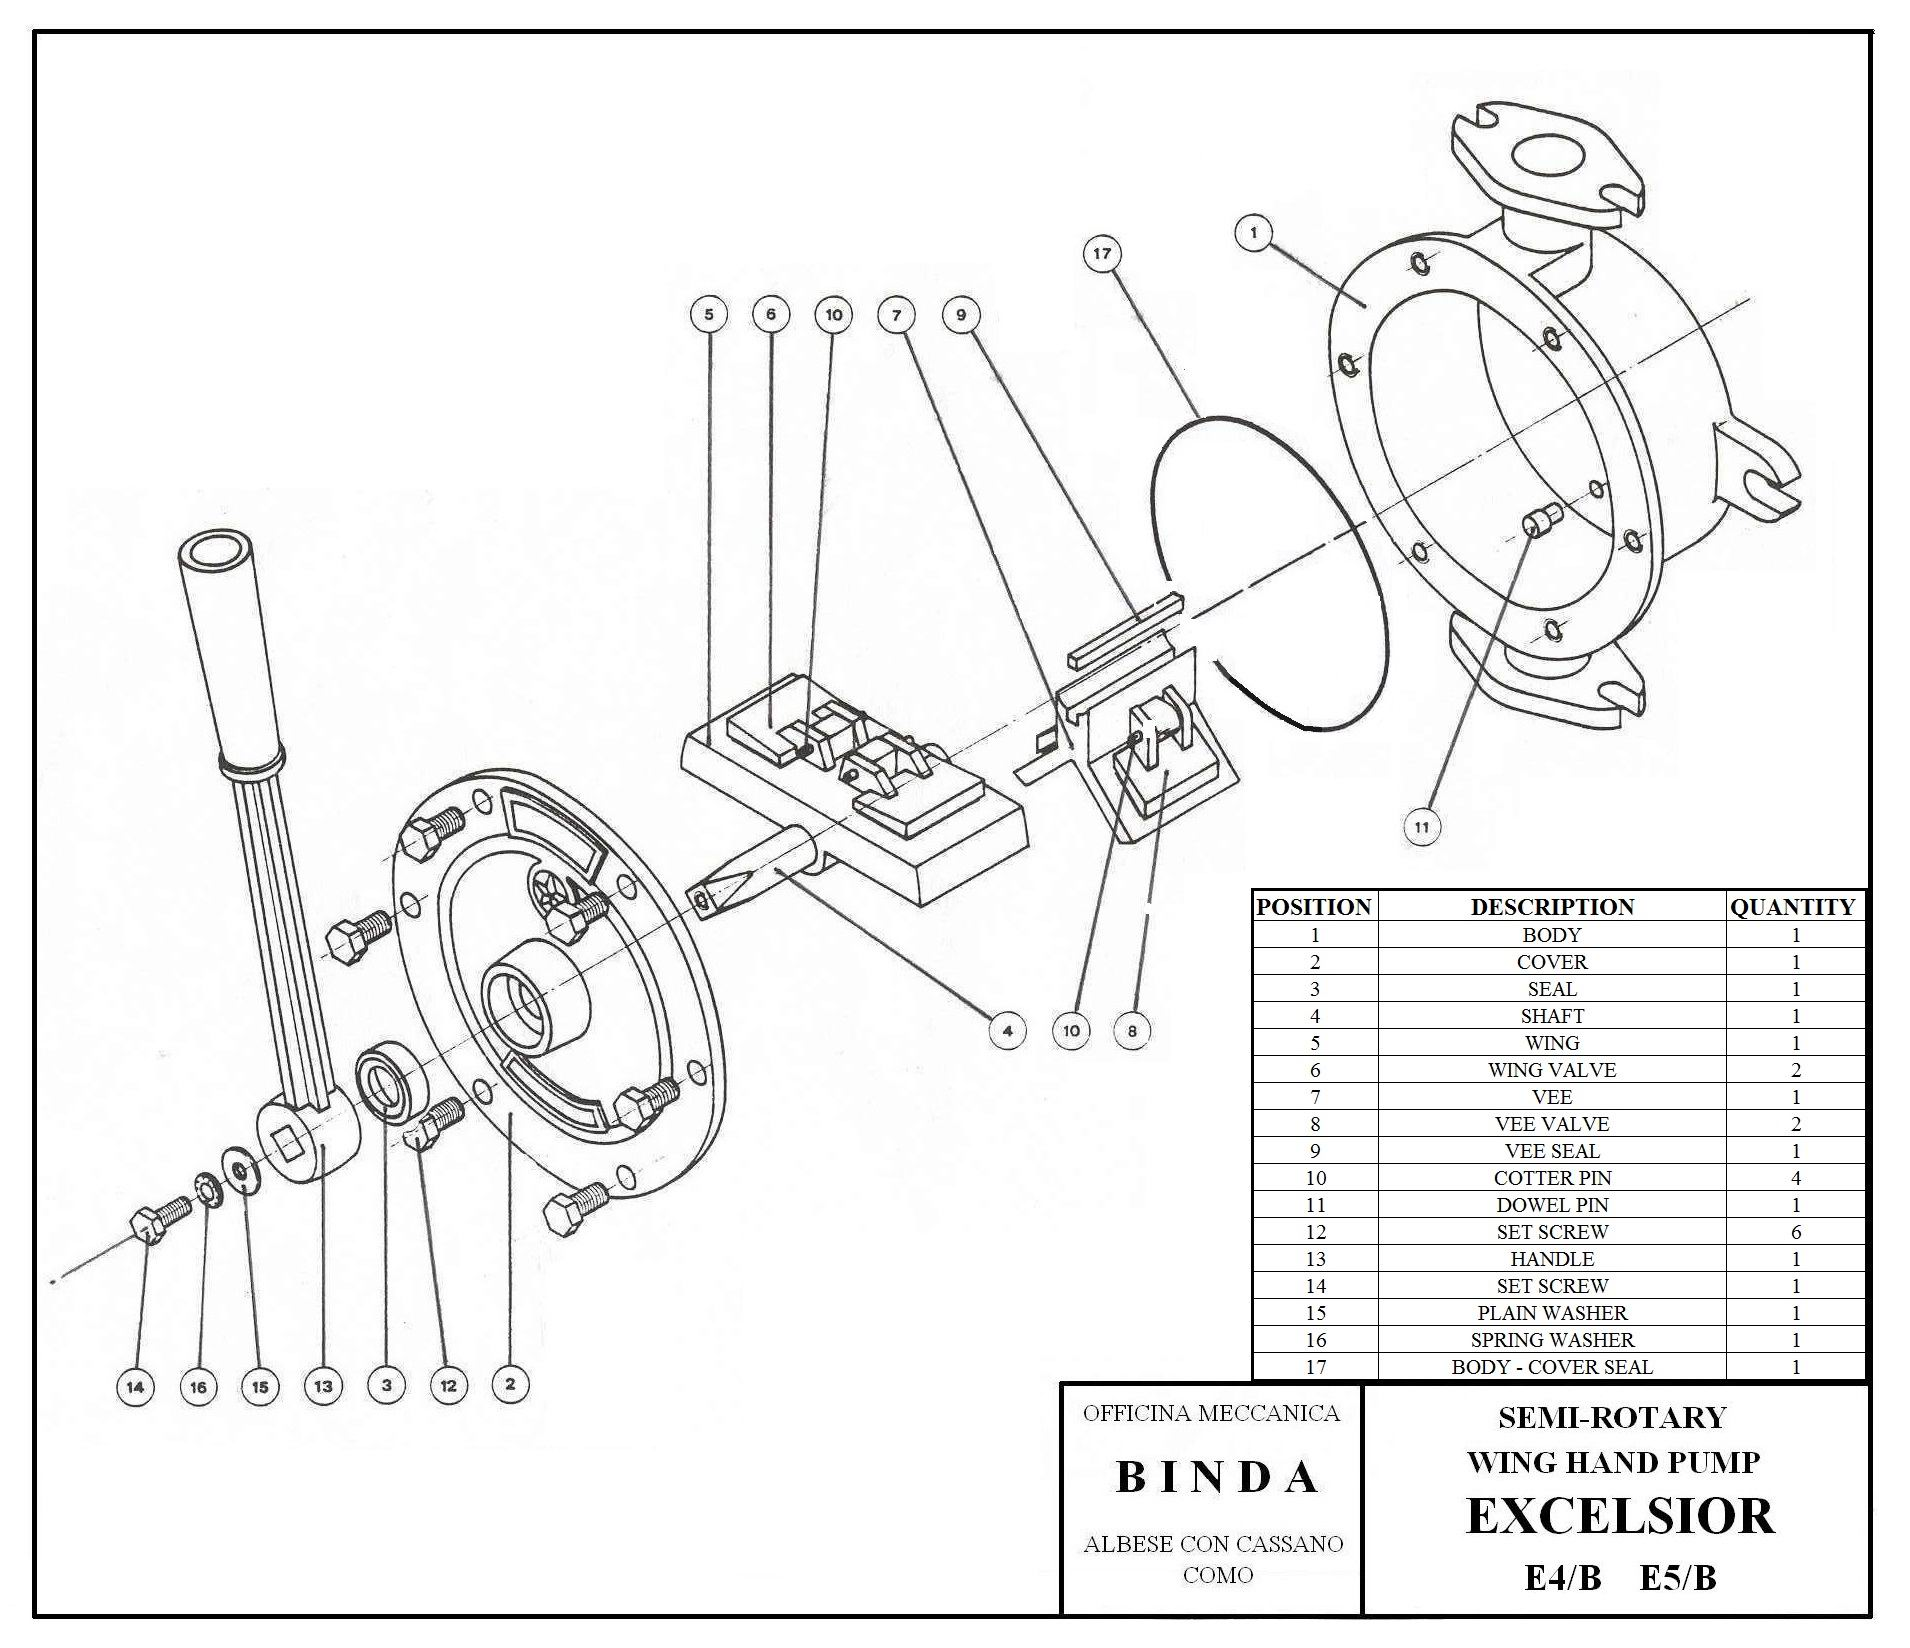 Isuzu 3lb1 Engine Wiring Diagram. Isuzu. Auto Wiring Diagram